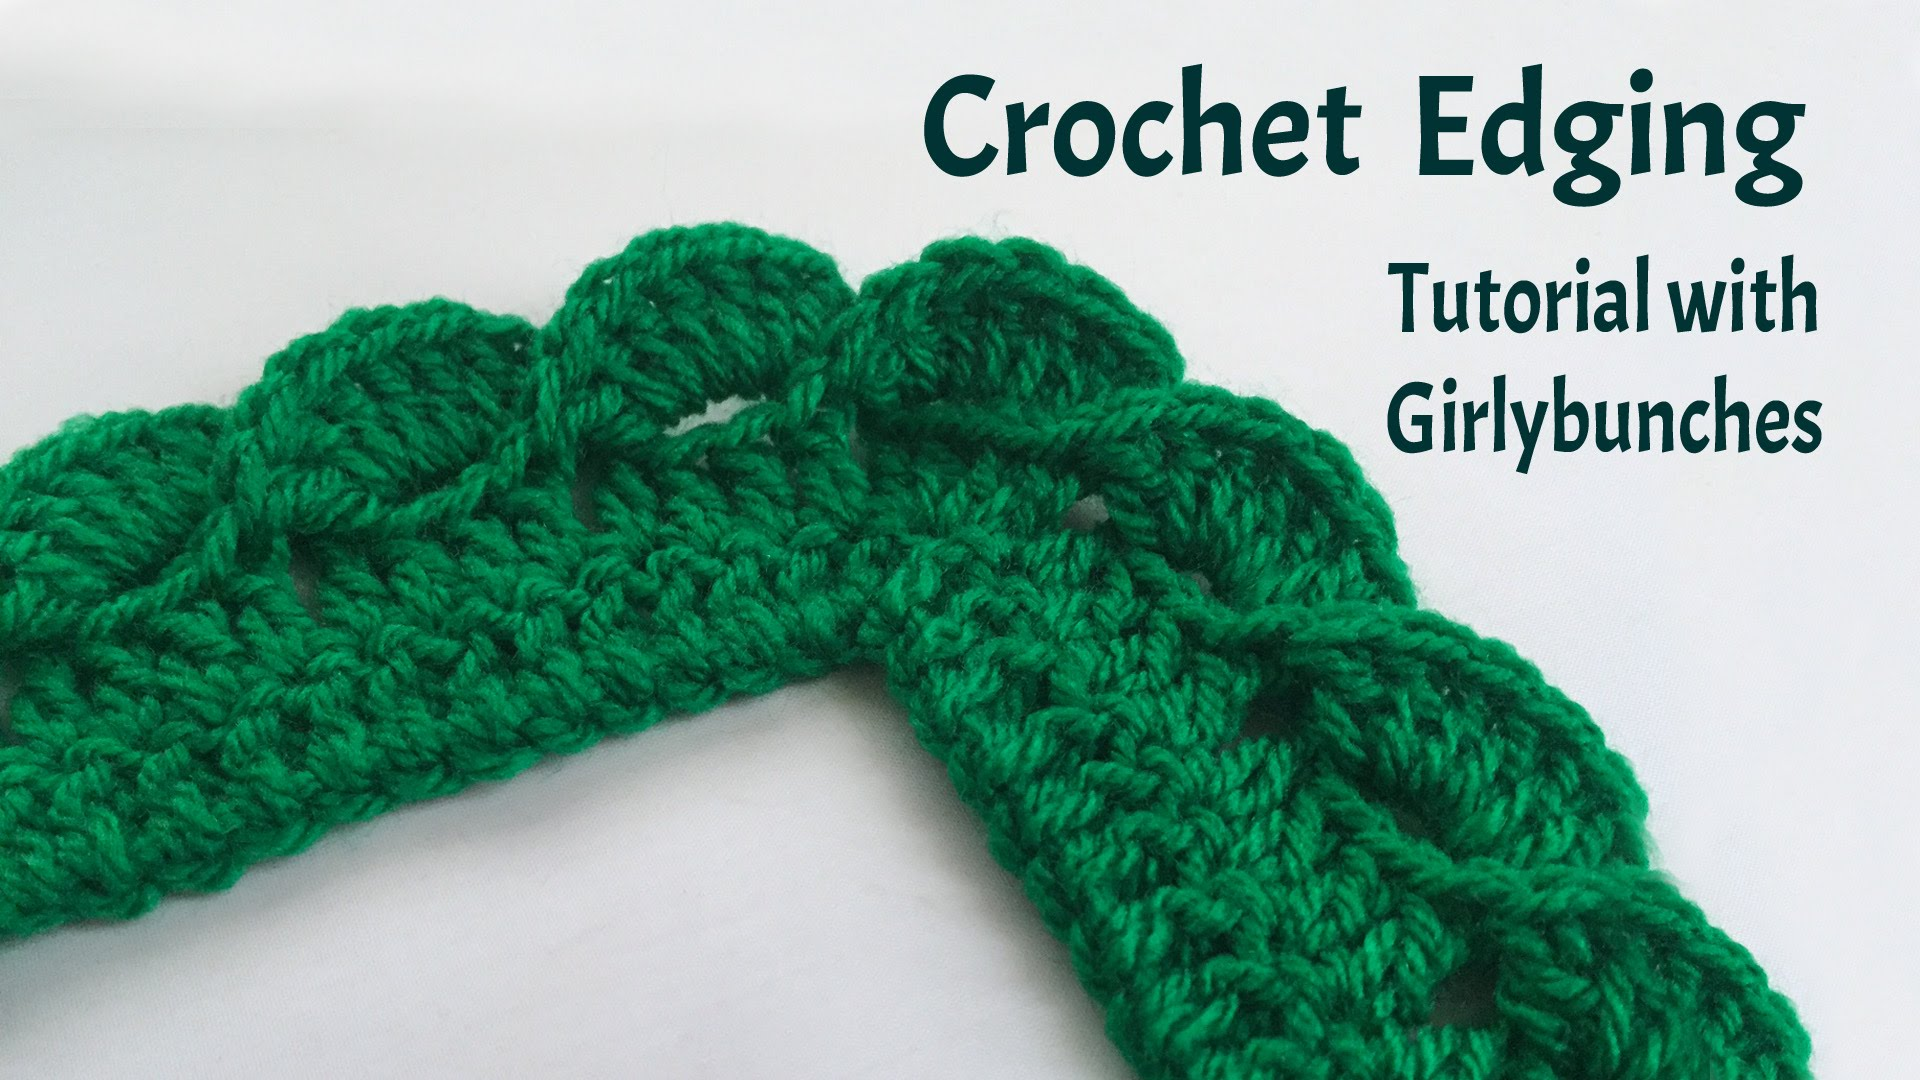 crochet edging crochet wave fan edging - tutorial | girlybunches - youtube qxnnukk